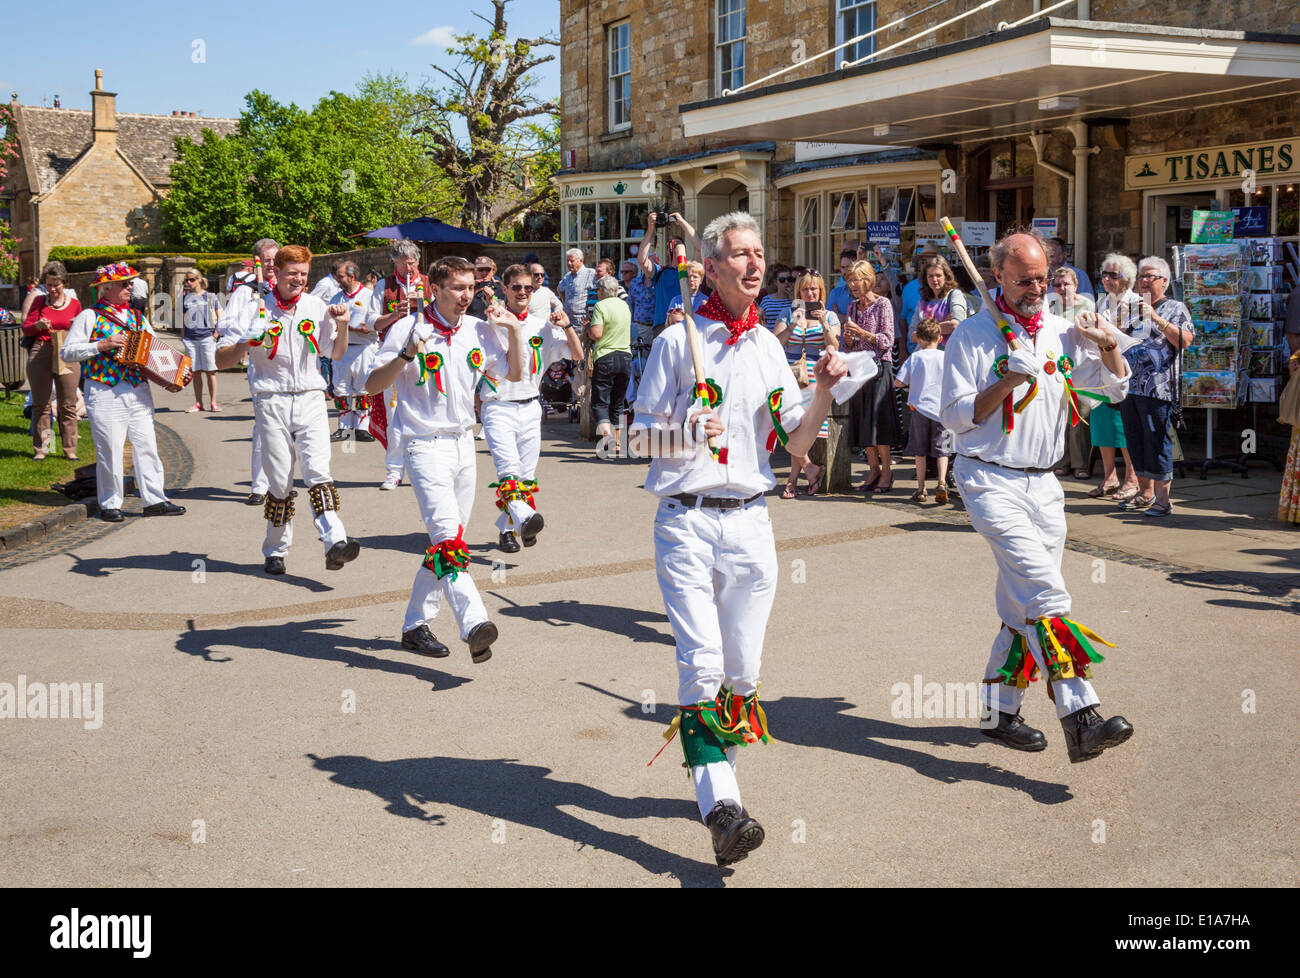 Morris Dancing in the village of Broadway, The Cotswolds, Worcestershire, England, UK, EU, Europe - Stock Image